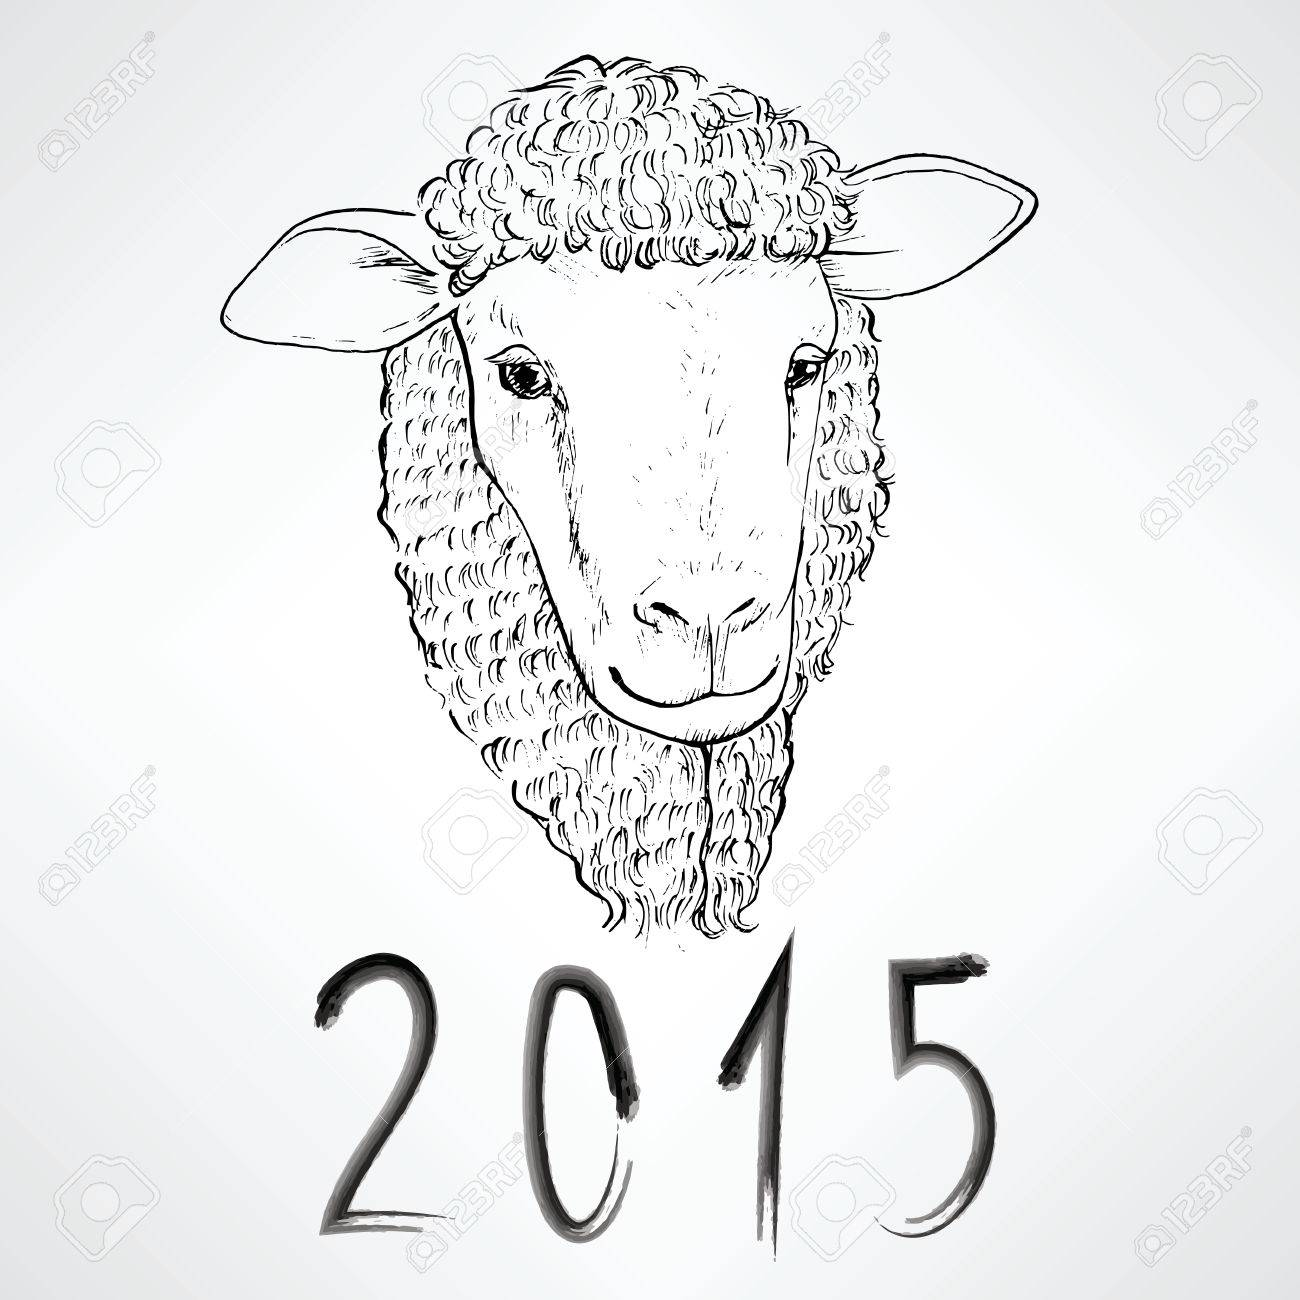 Black Ink Realistic Sheep Portrait Drawing With 2015 Text For Chinese New Year Stock Vector